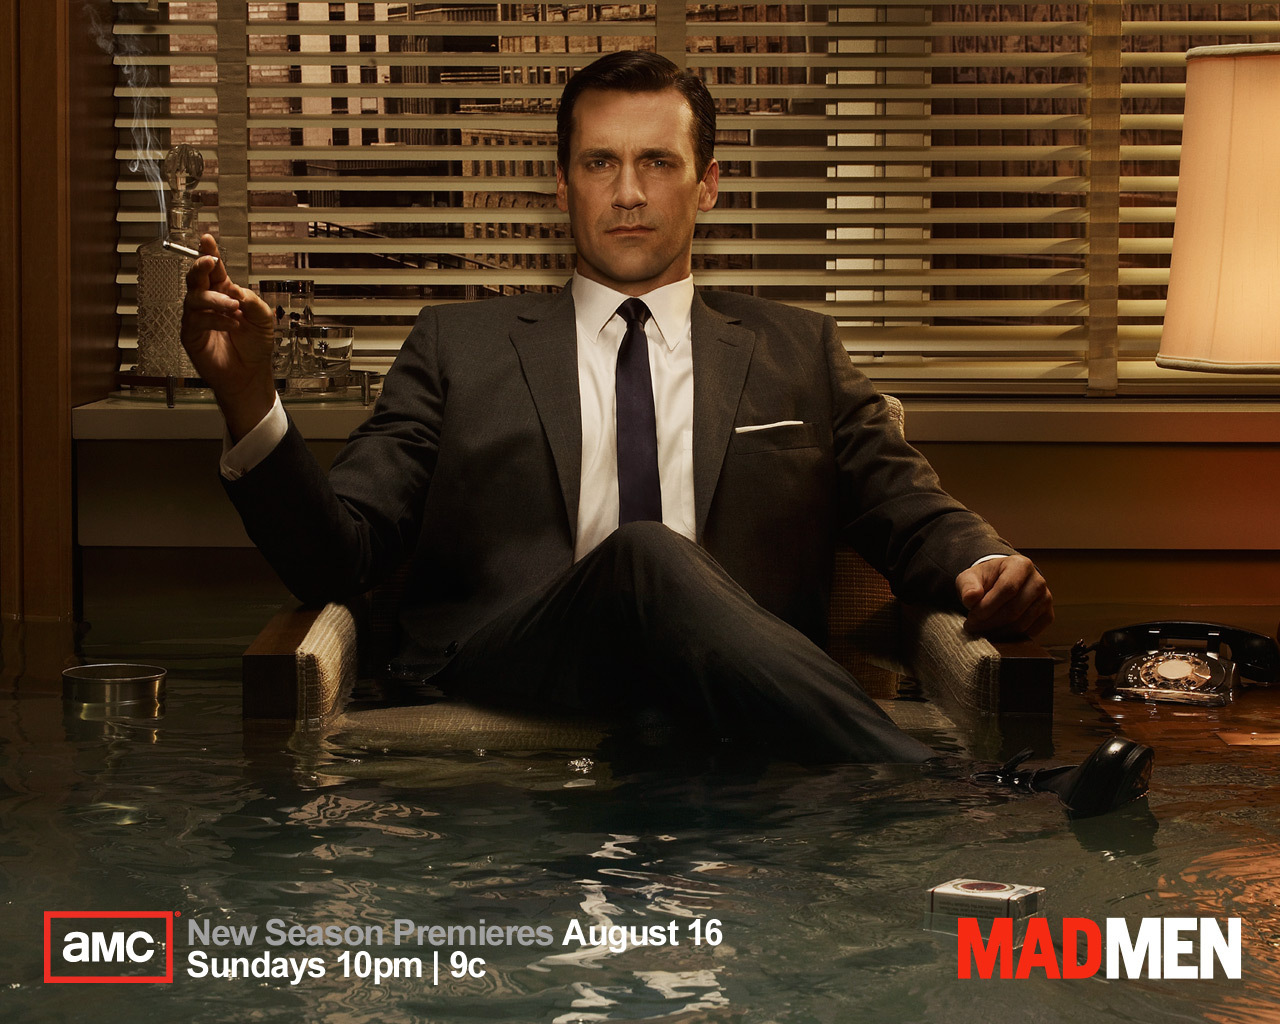 Jon-Hamm-j​on-hamm-78​52365-1280​-1024